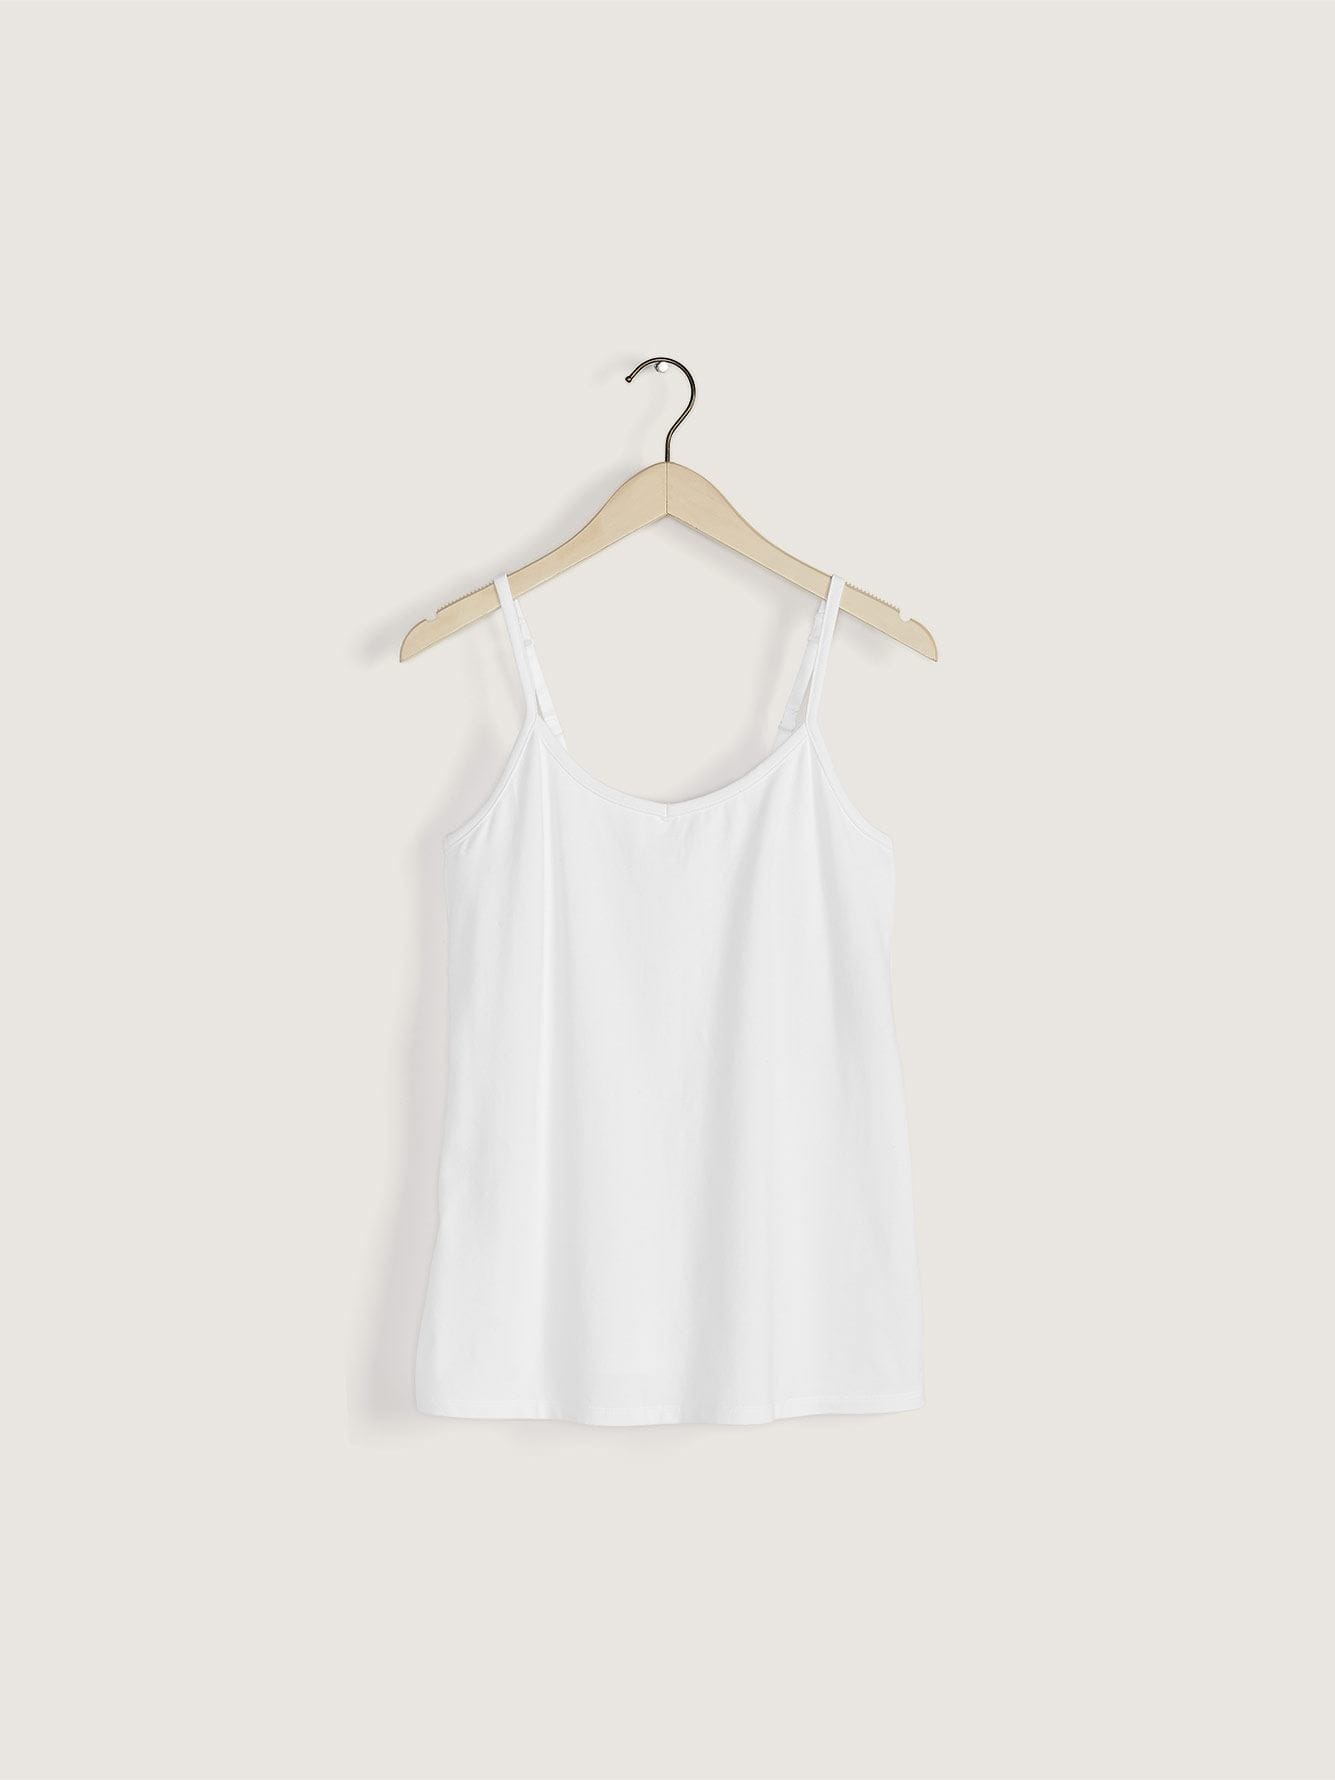 Fitted Cotton Tank Top with Adjustable Straps